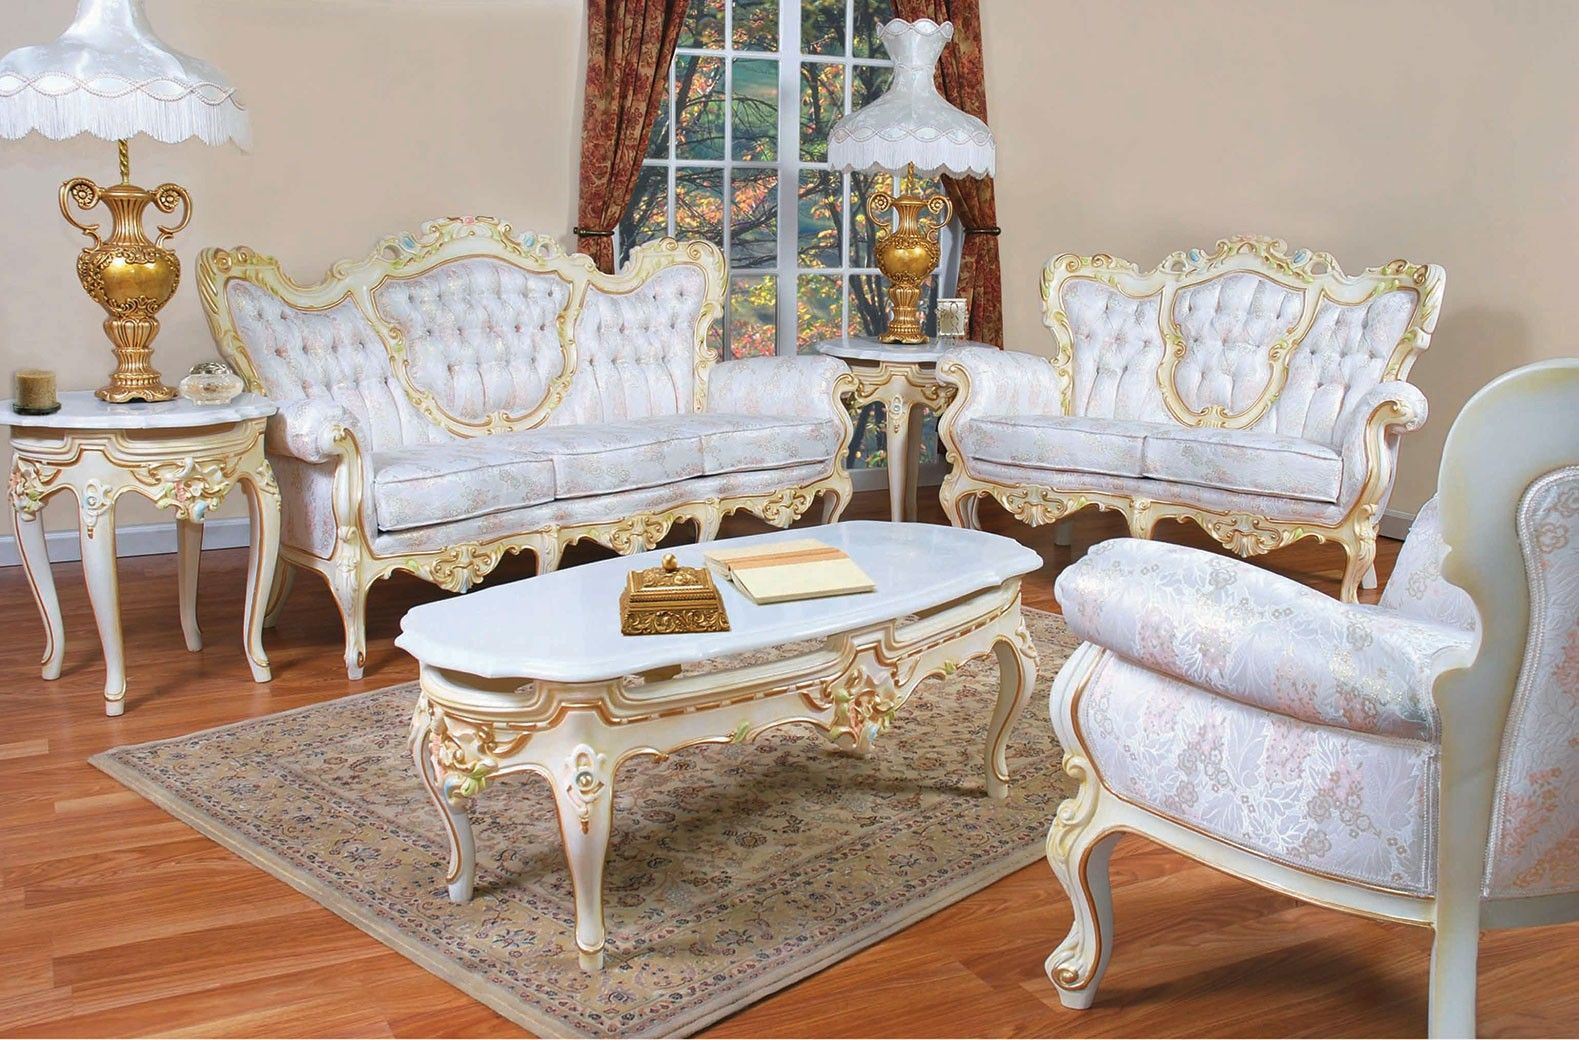 French Provincial Style Sofa Chair in 8  Victorian style